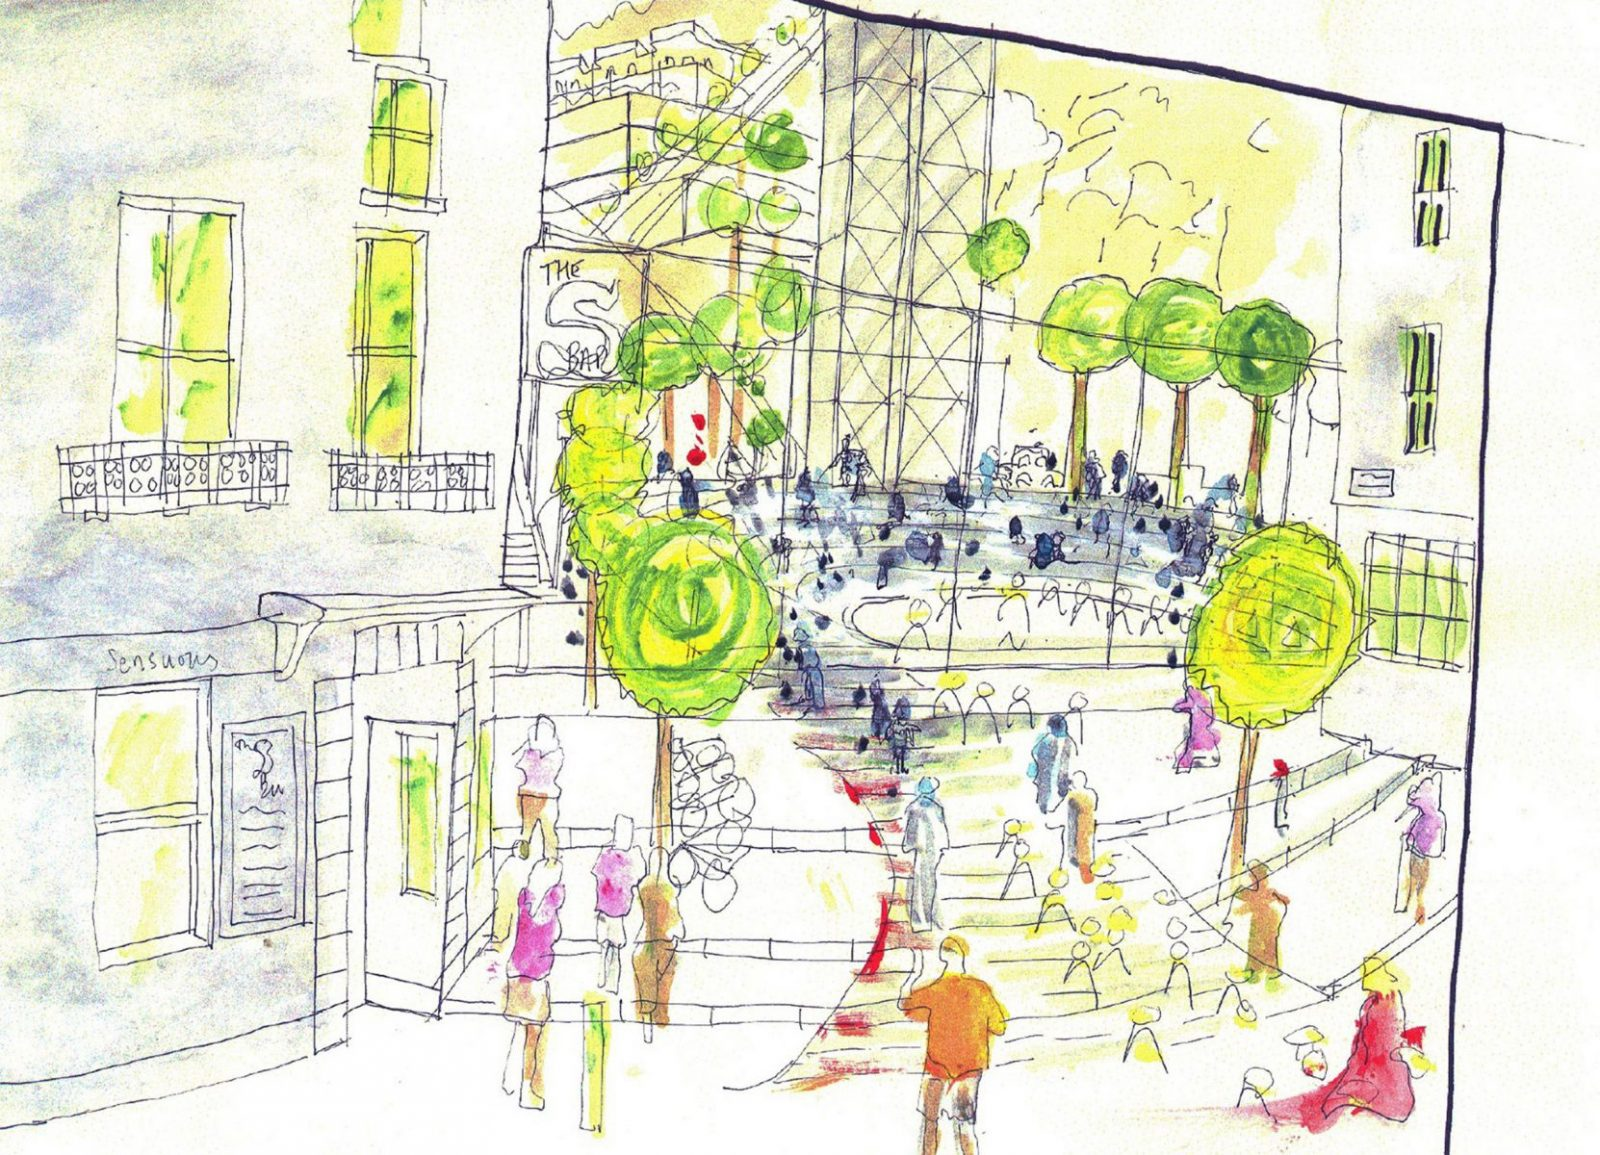 snow hill regeneration st helier masterplan jersey architects1 Page 1